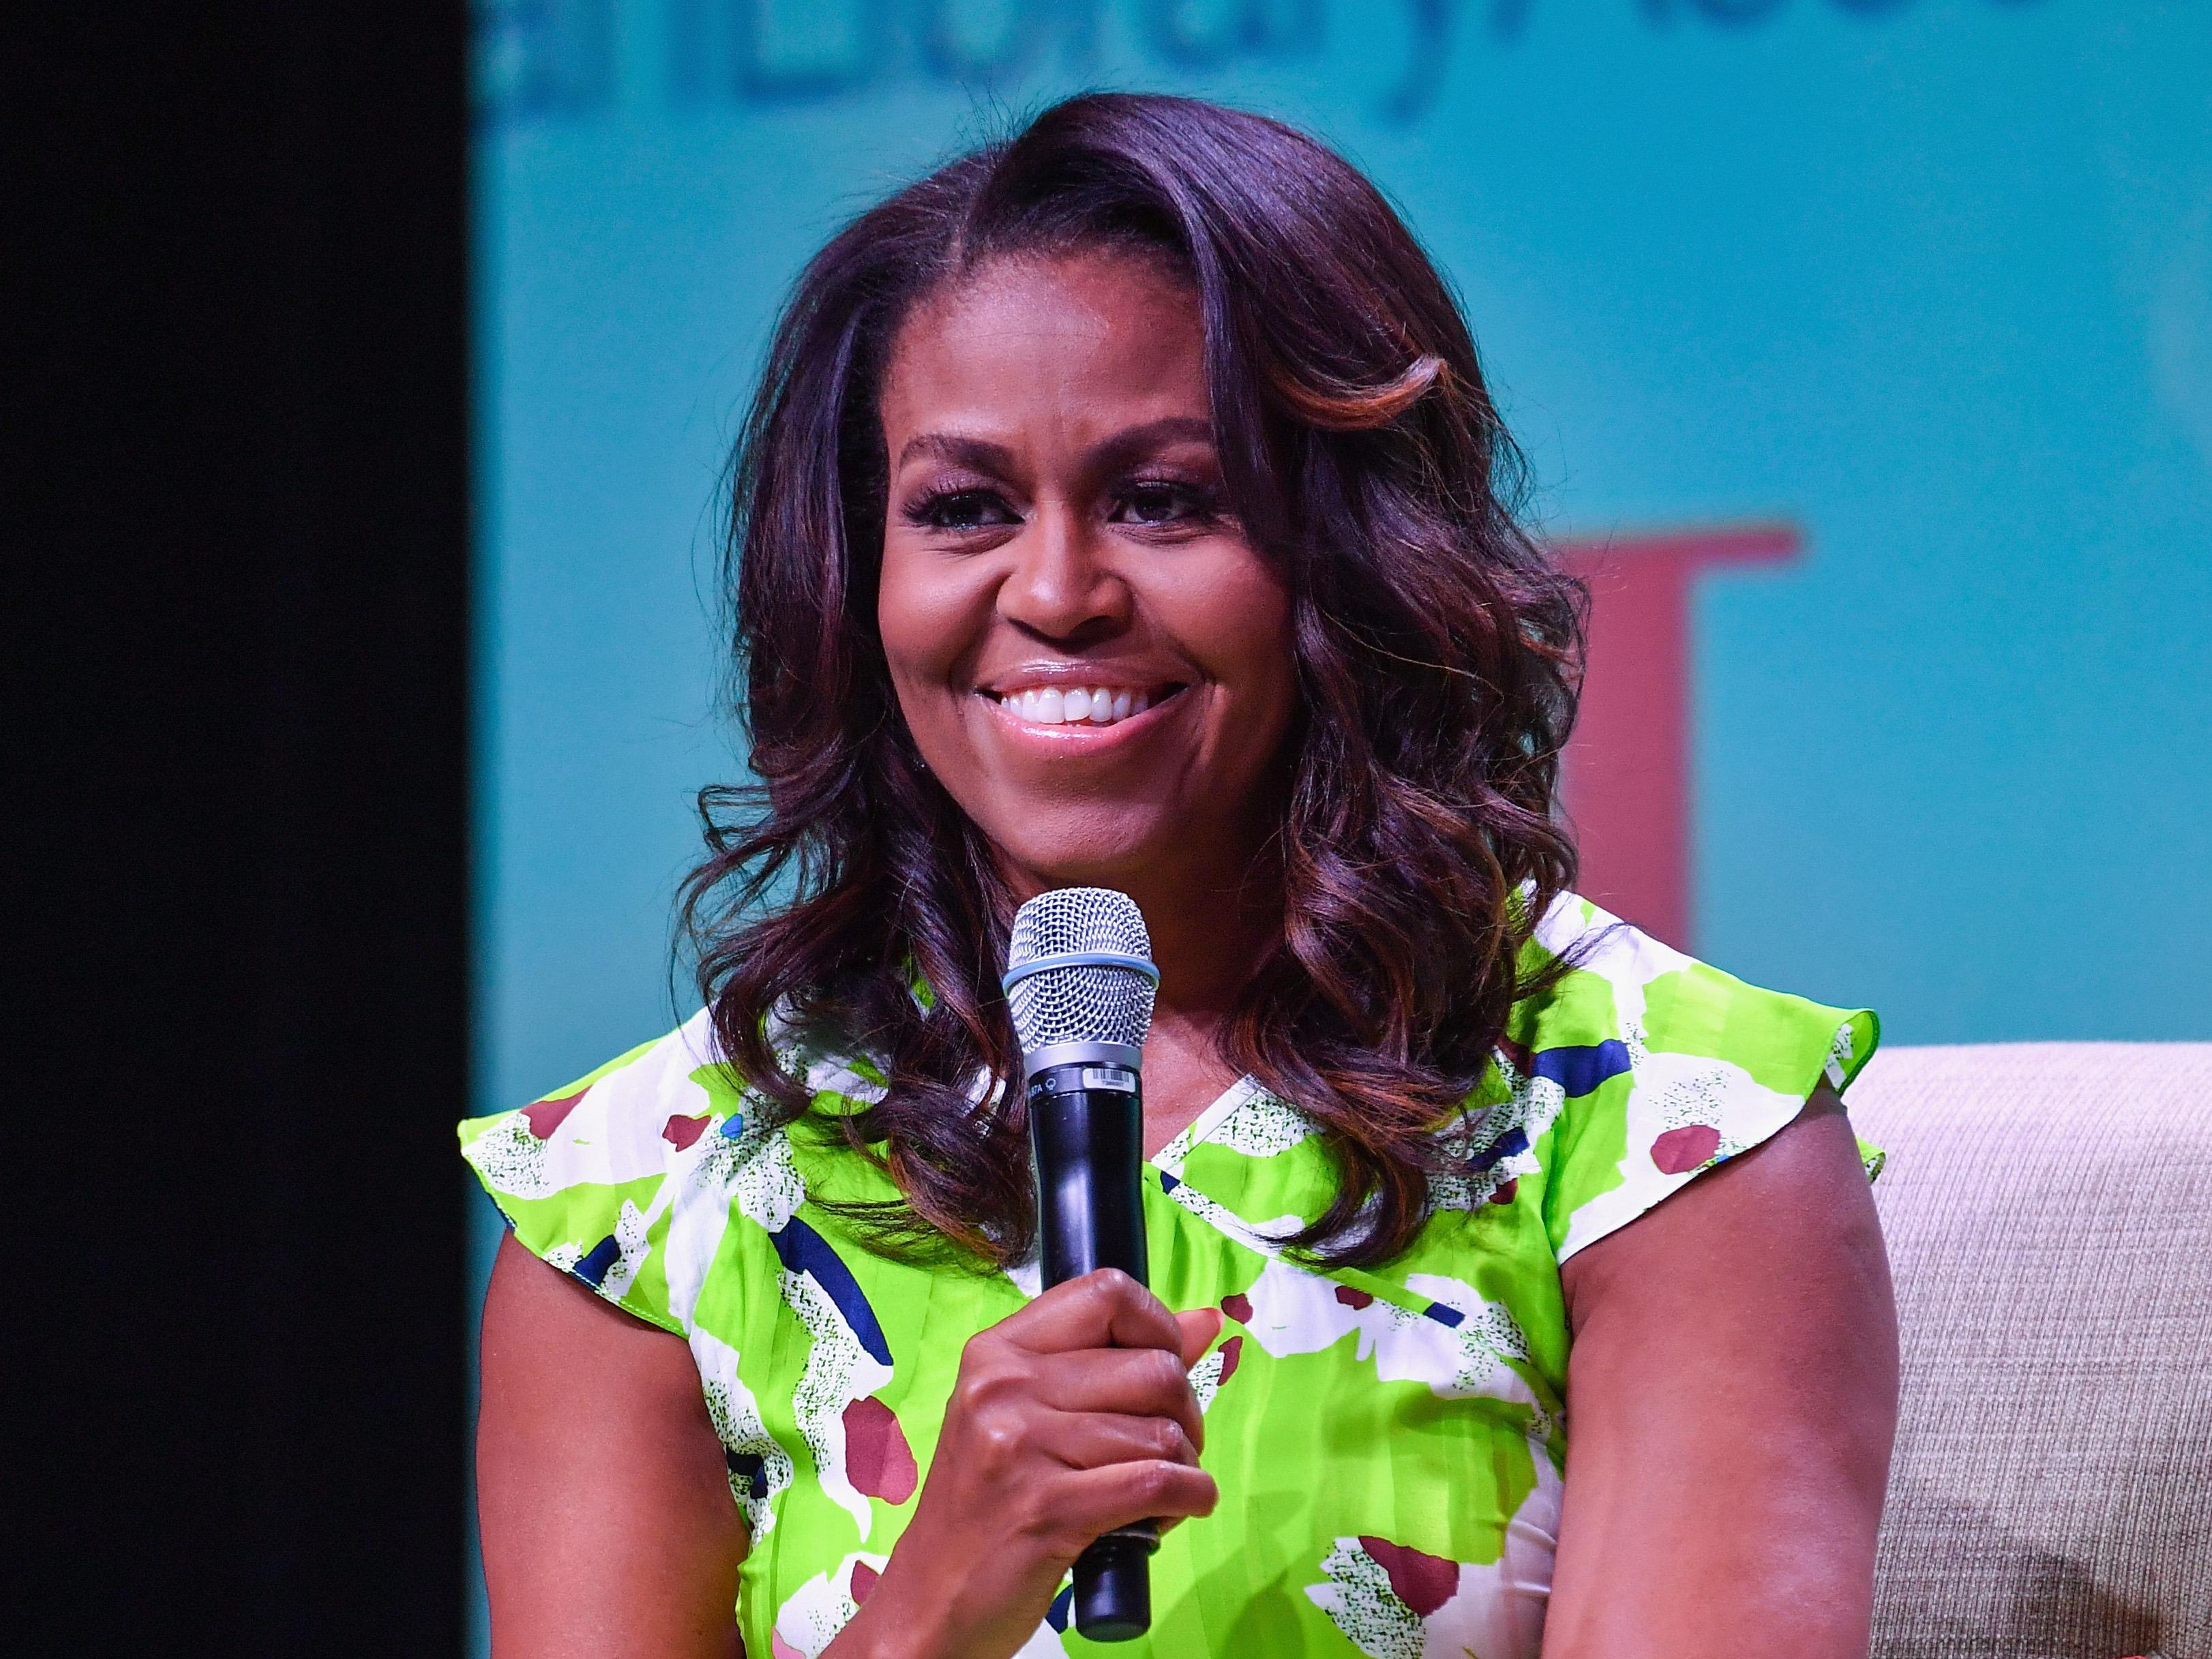 Michelle Obama Got A Stunning Engagement Ring Upgrade